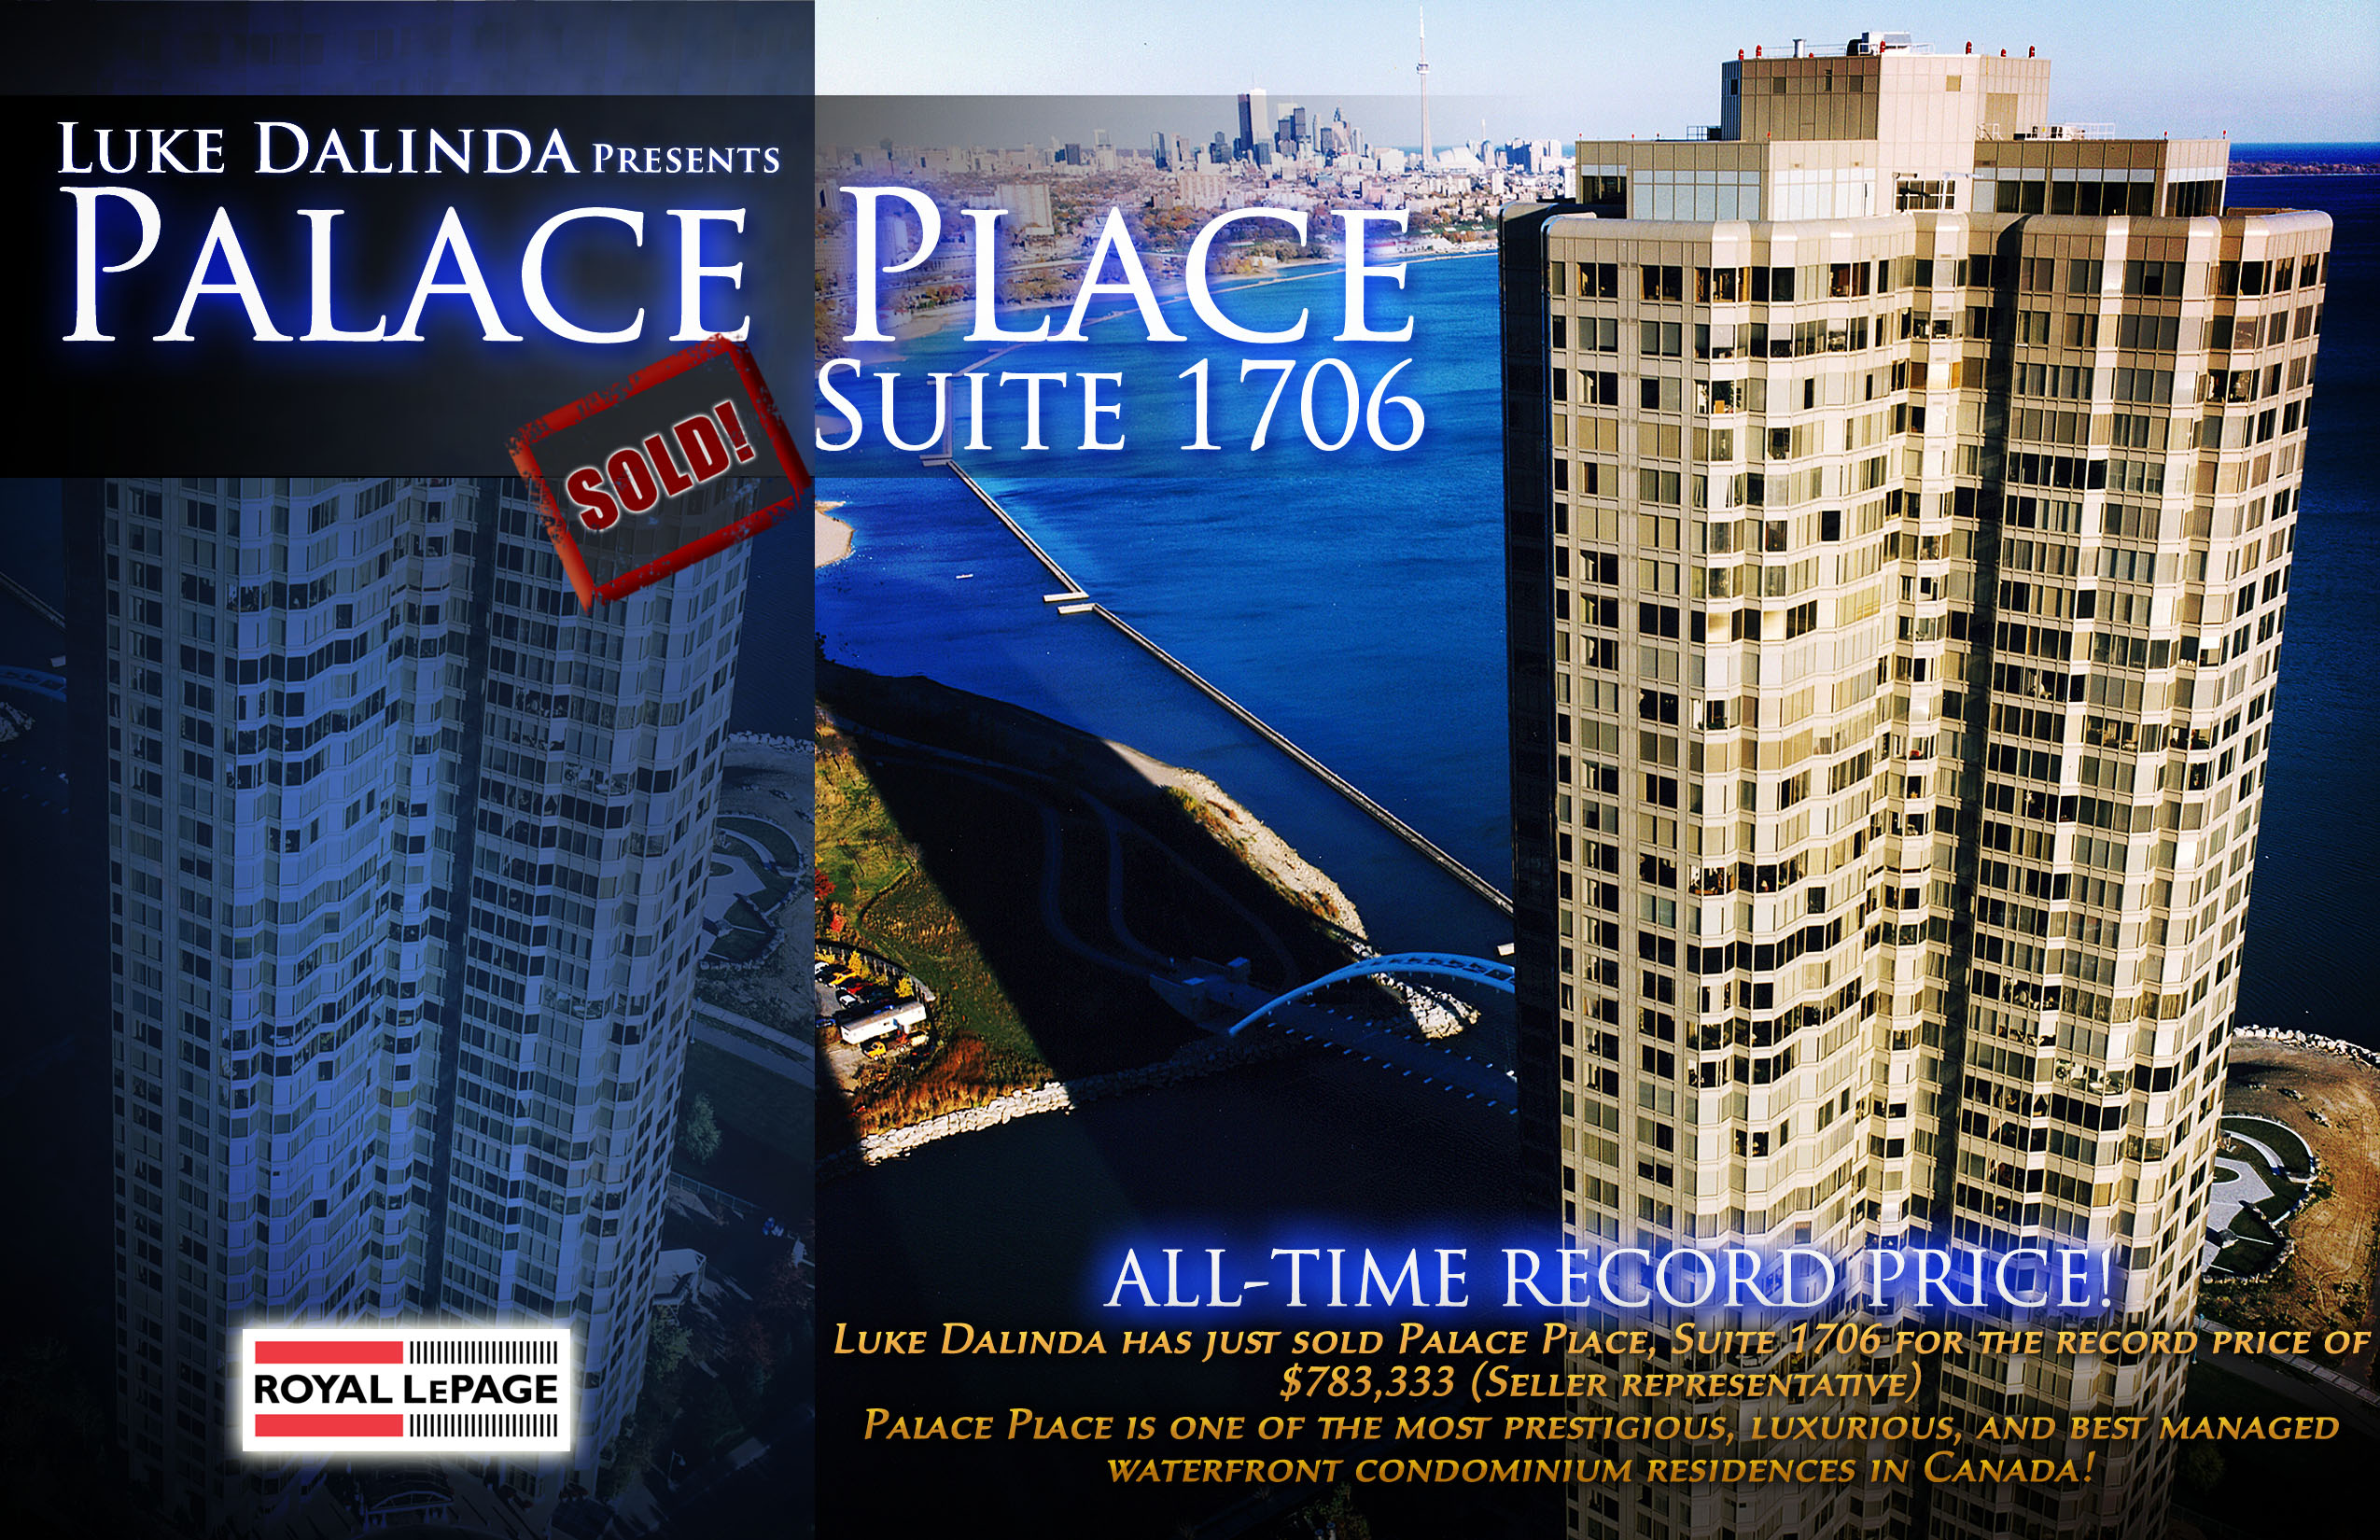 Just Sold Palace Place Suite 1706 For The All Time